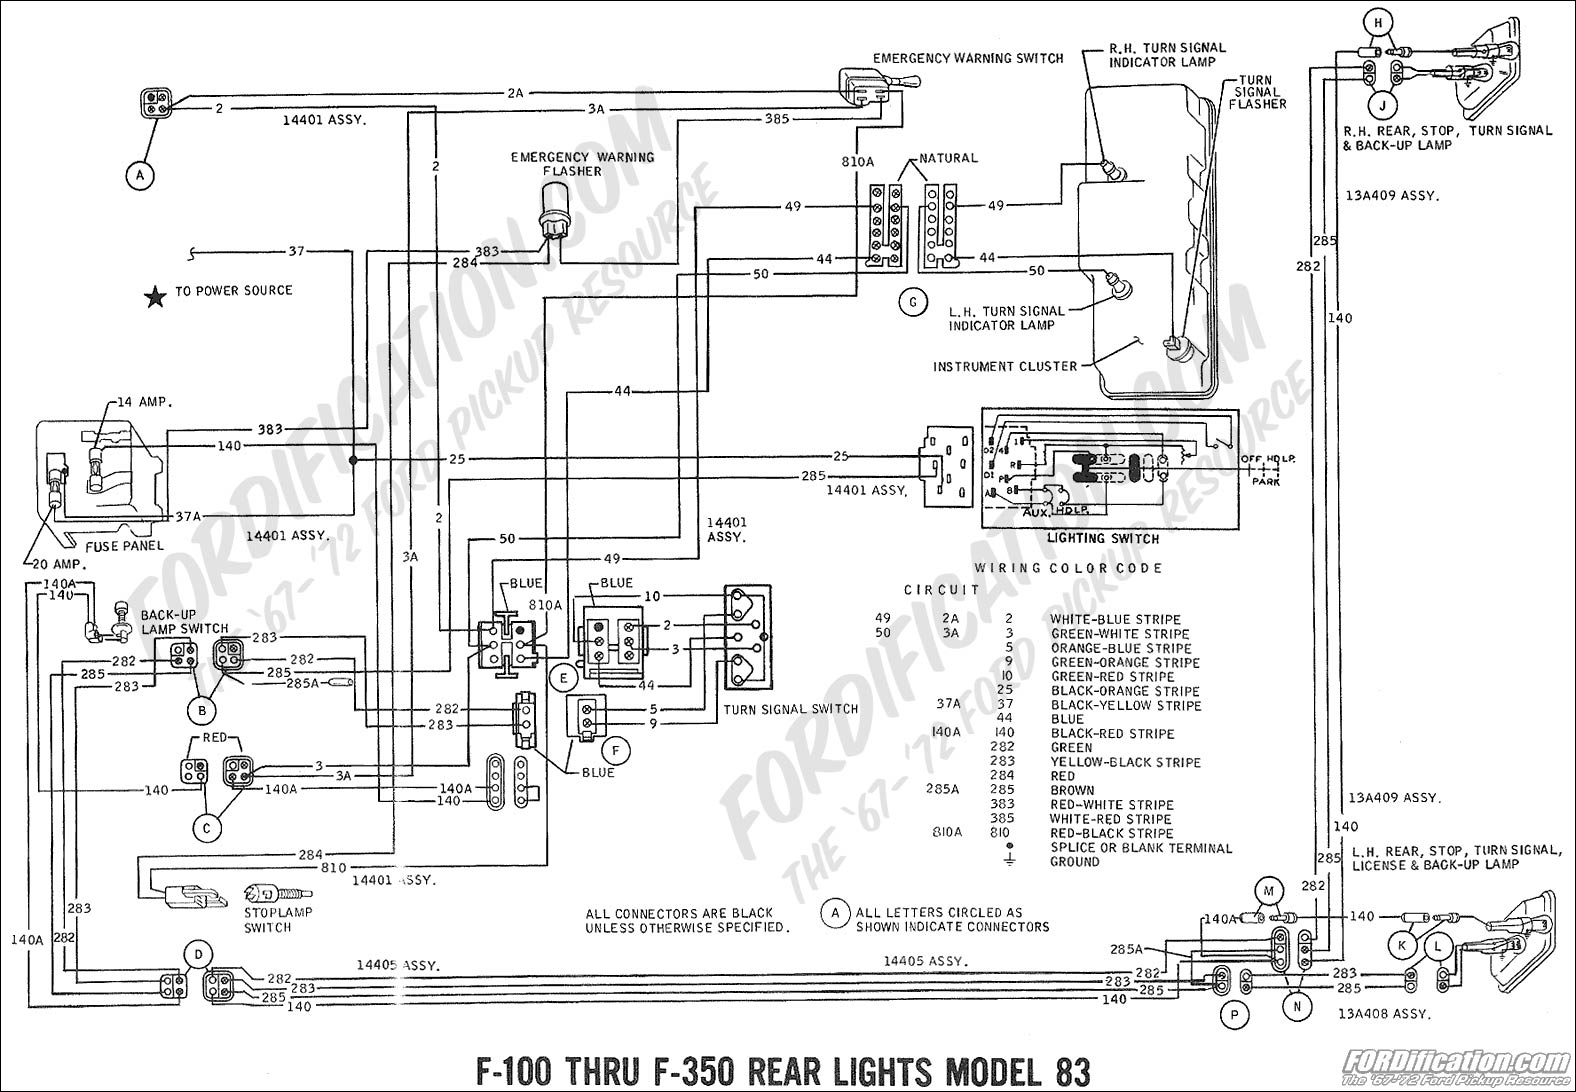 Tail Light Wiring Diagram 1995 Chevy Truck together with Dome Light Wiring Diagram 1955 Chevy Bel Air likewise 1964 Gmc Wiring Diagram additionally 08240 additionally 1955 1956 1957 Chevrolet Turn Signals. on 1950 chevy tail light wiring